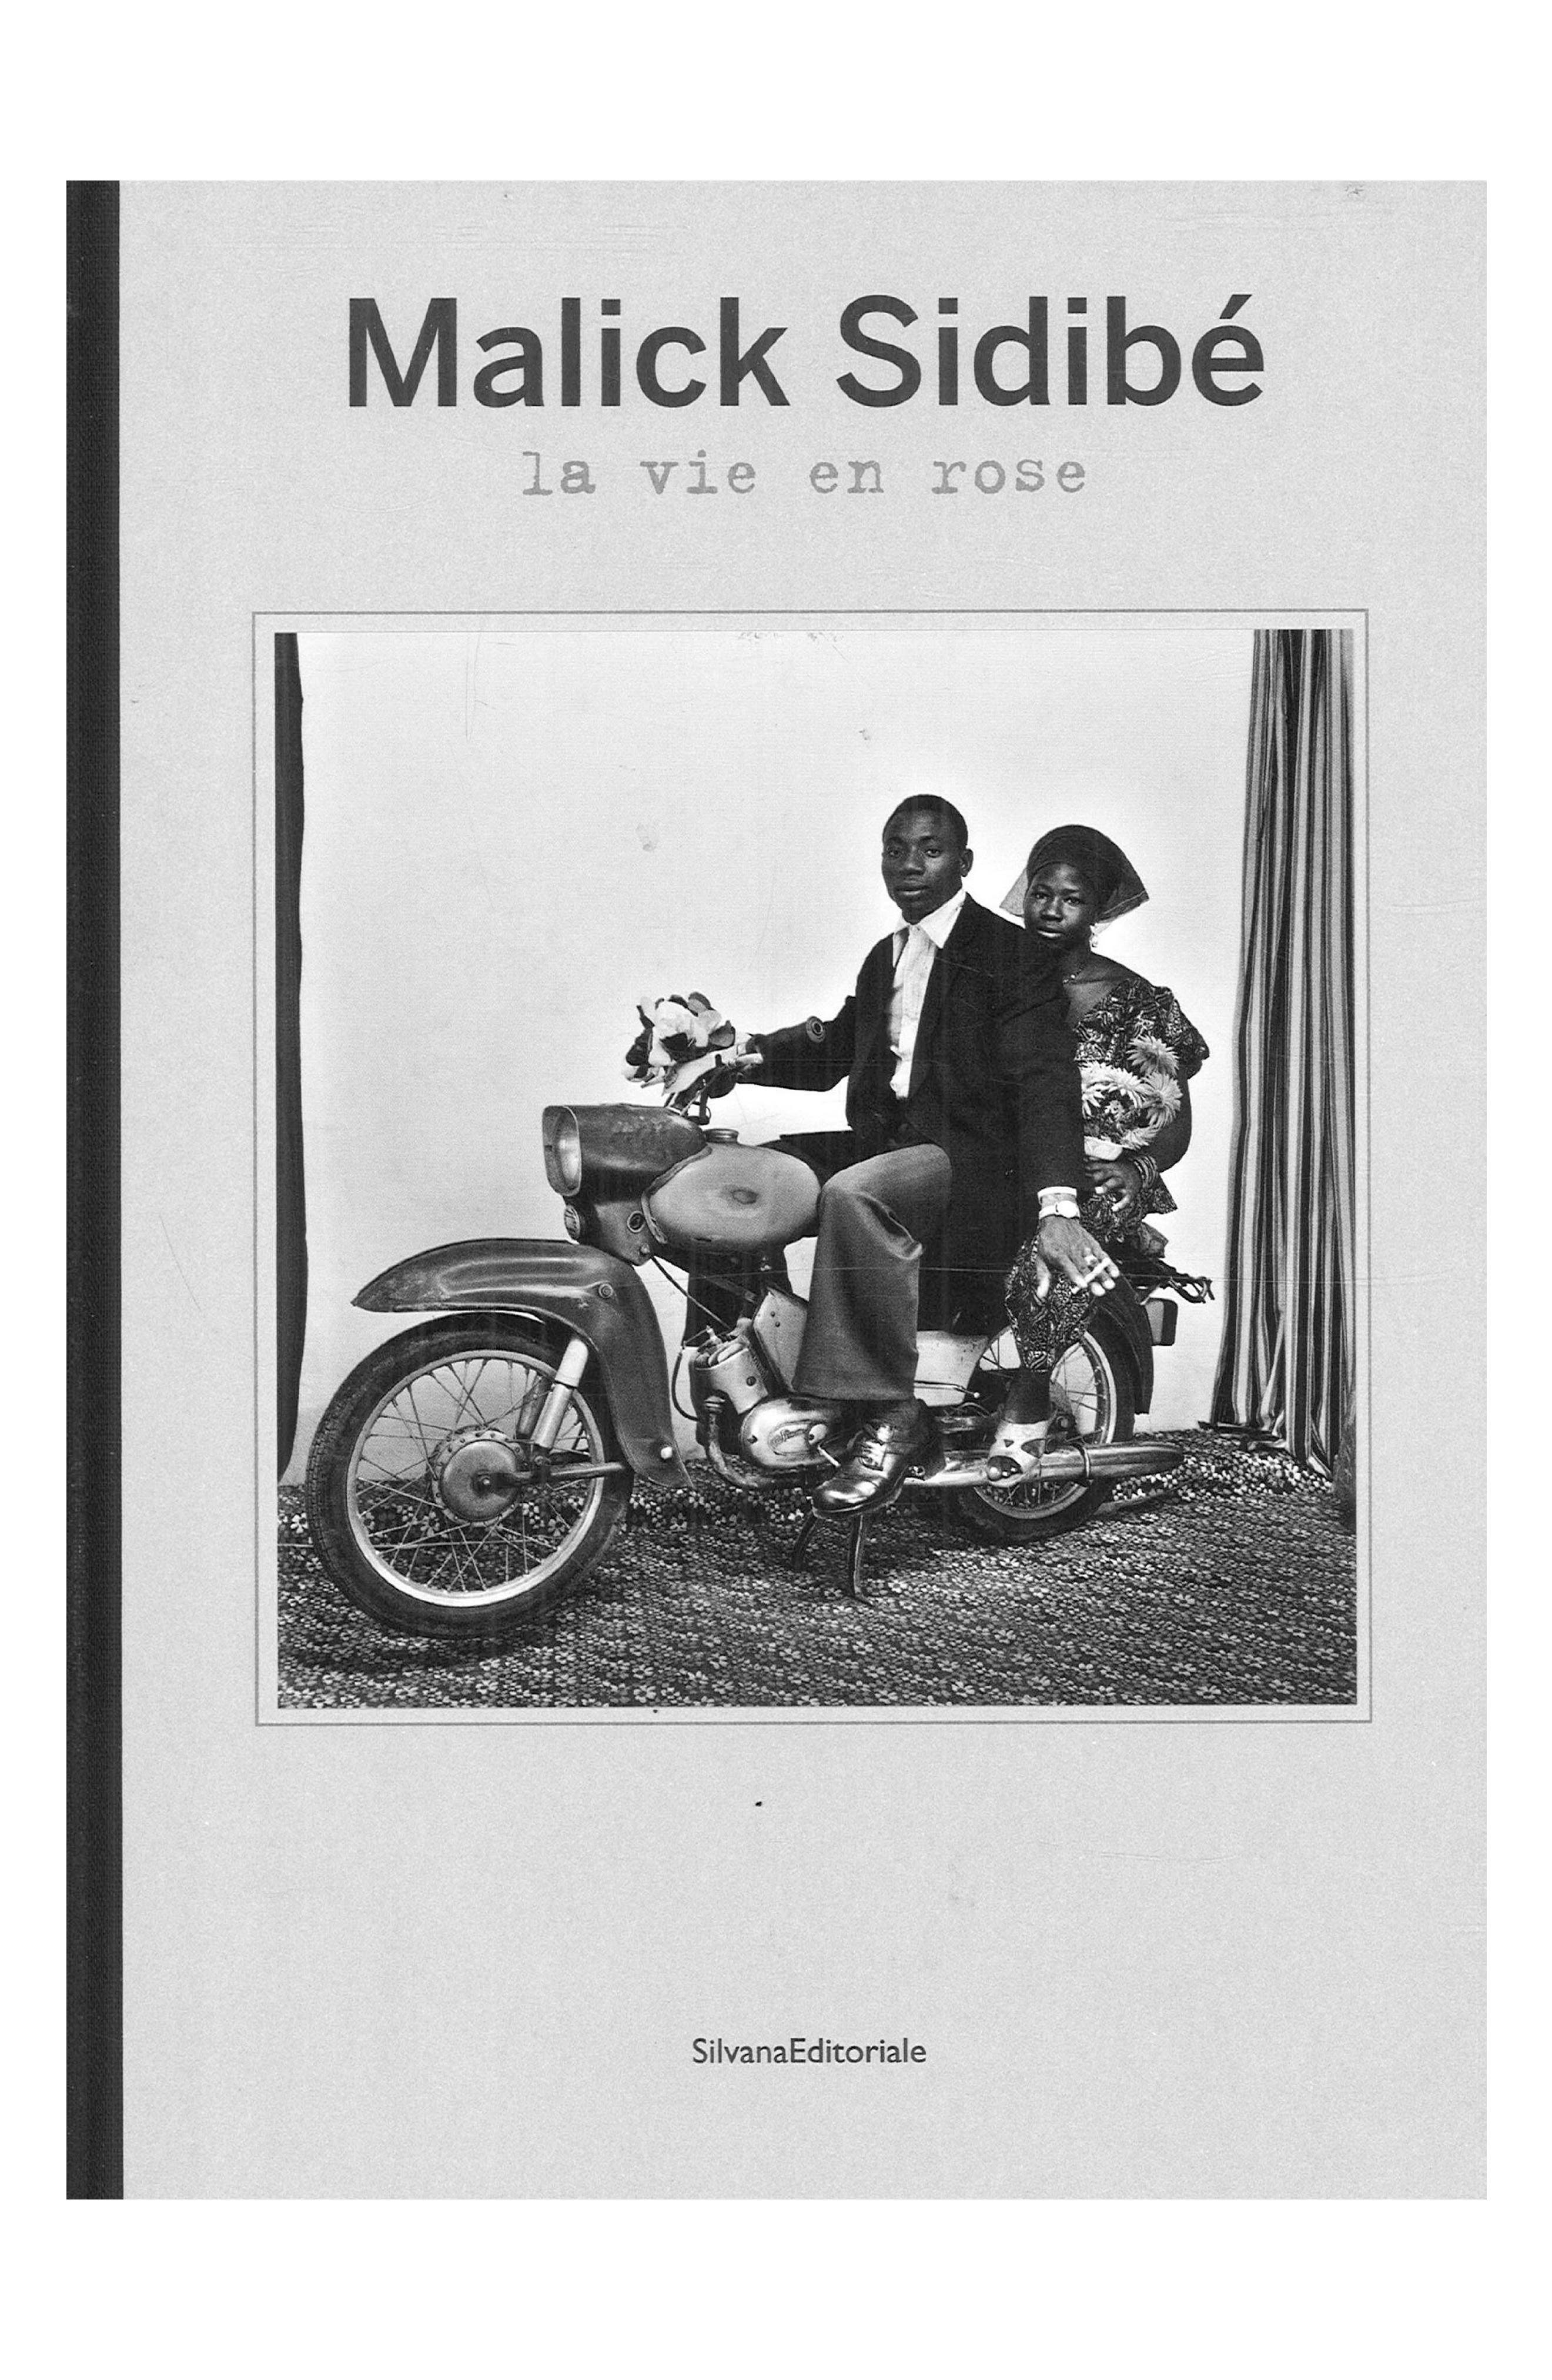 Alternate Image 1 Selected - Malick Sidibé: La Vie en Rose Book